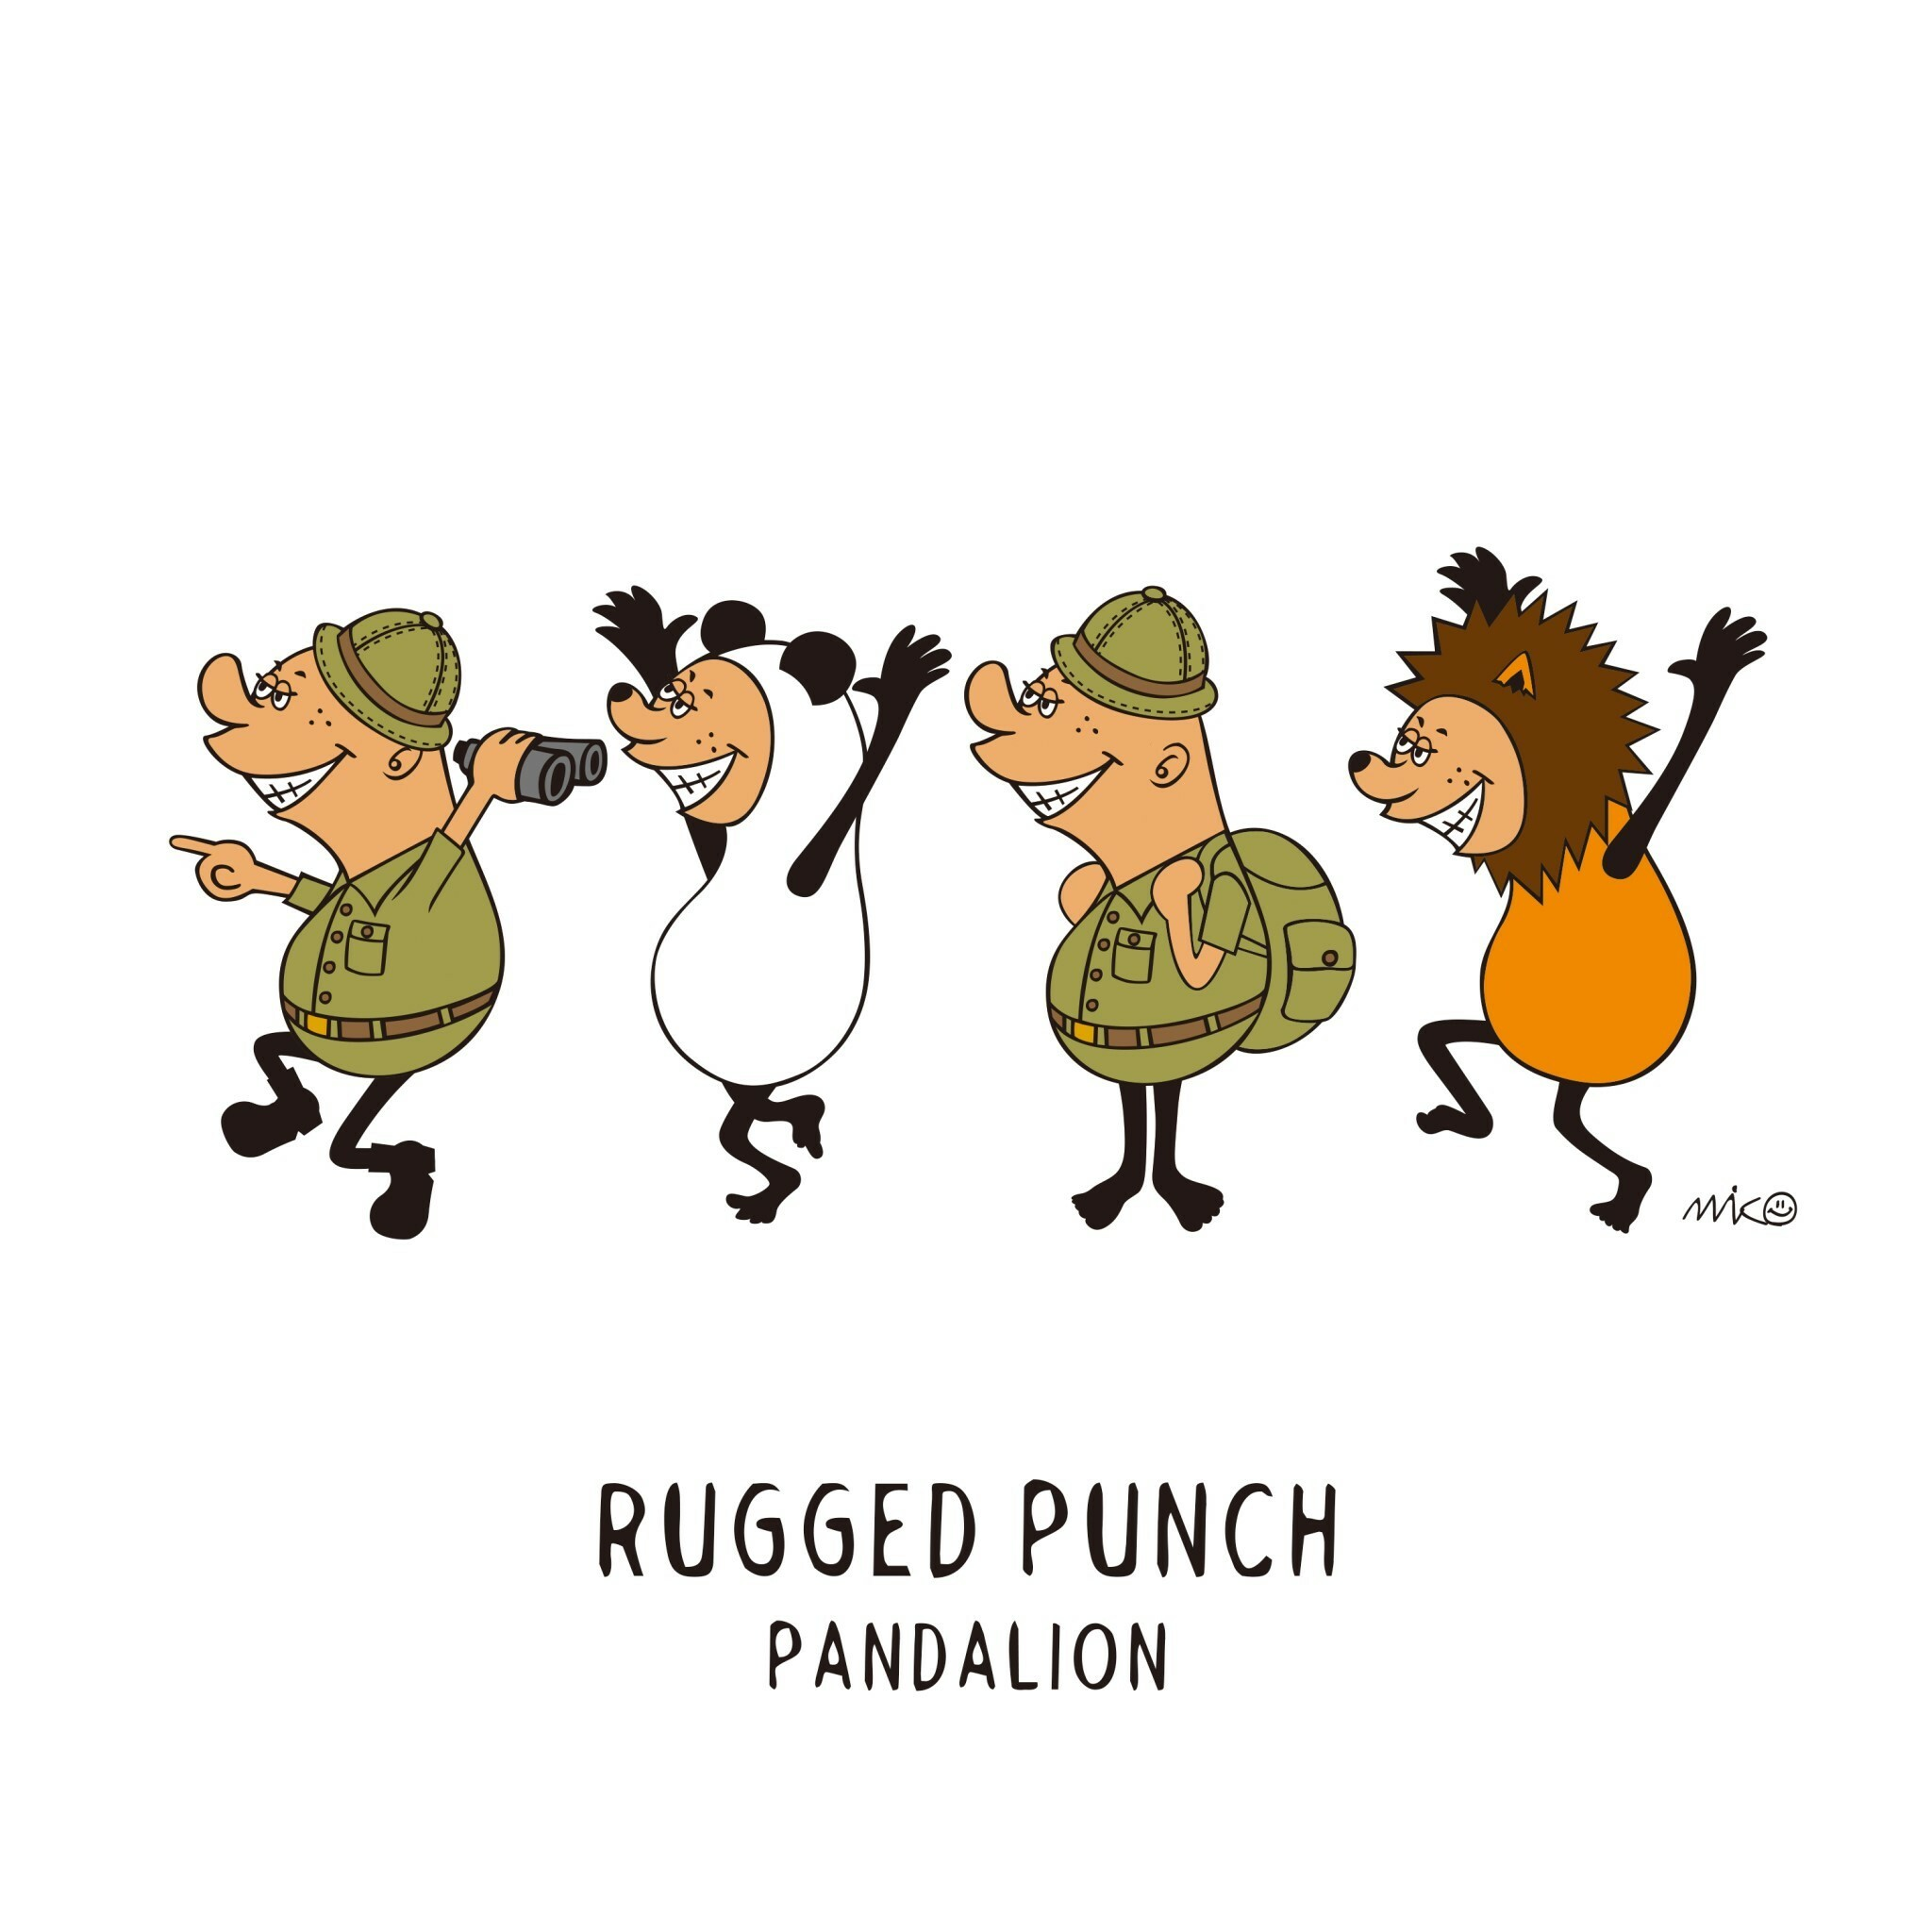 RUGGED PUNCH